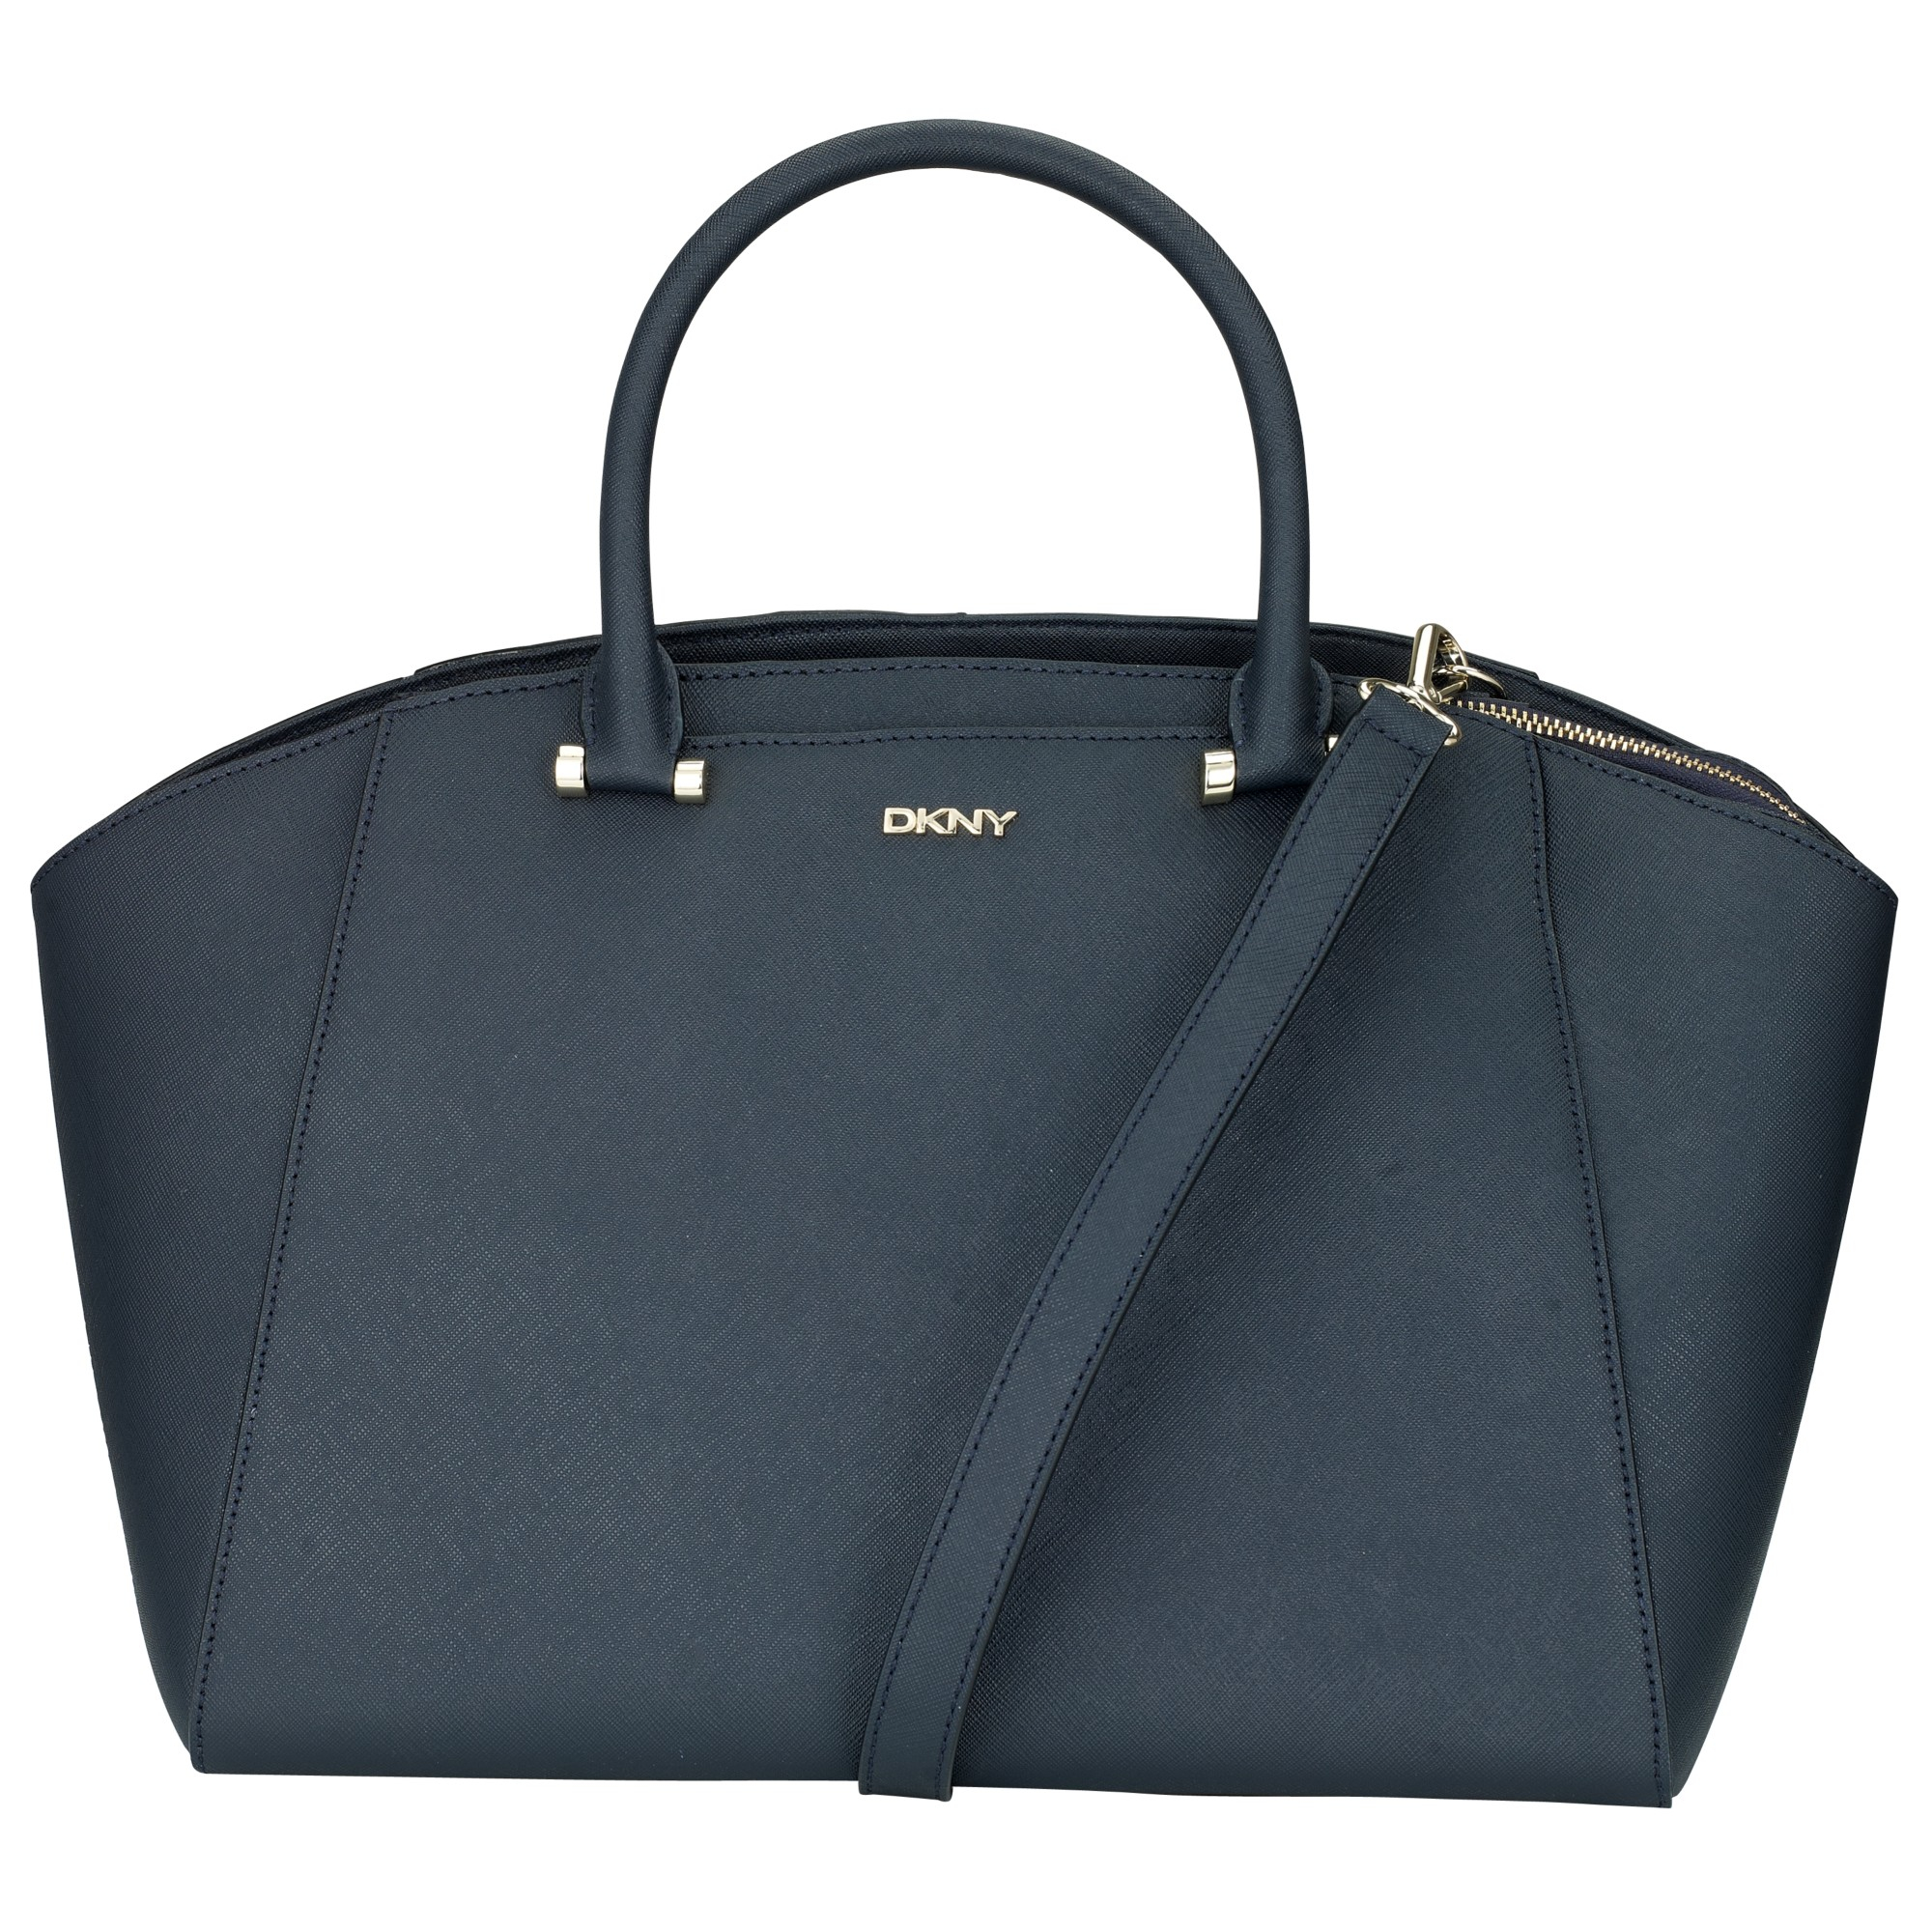 Dkny Bryant Large Leather Satchel Bag in Blue (navy)